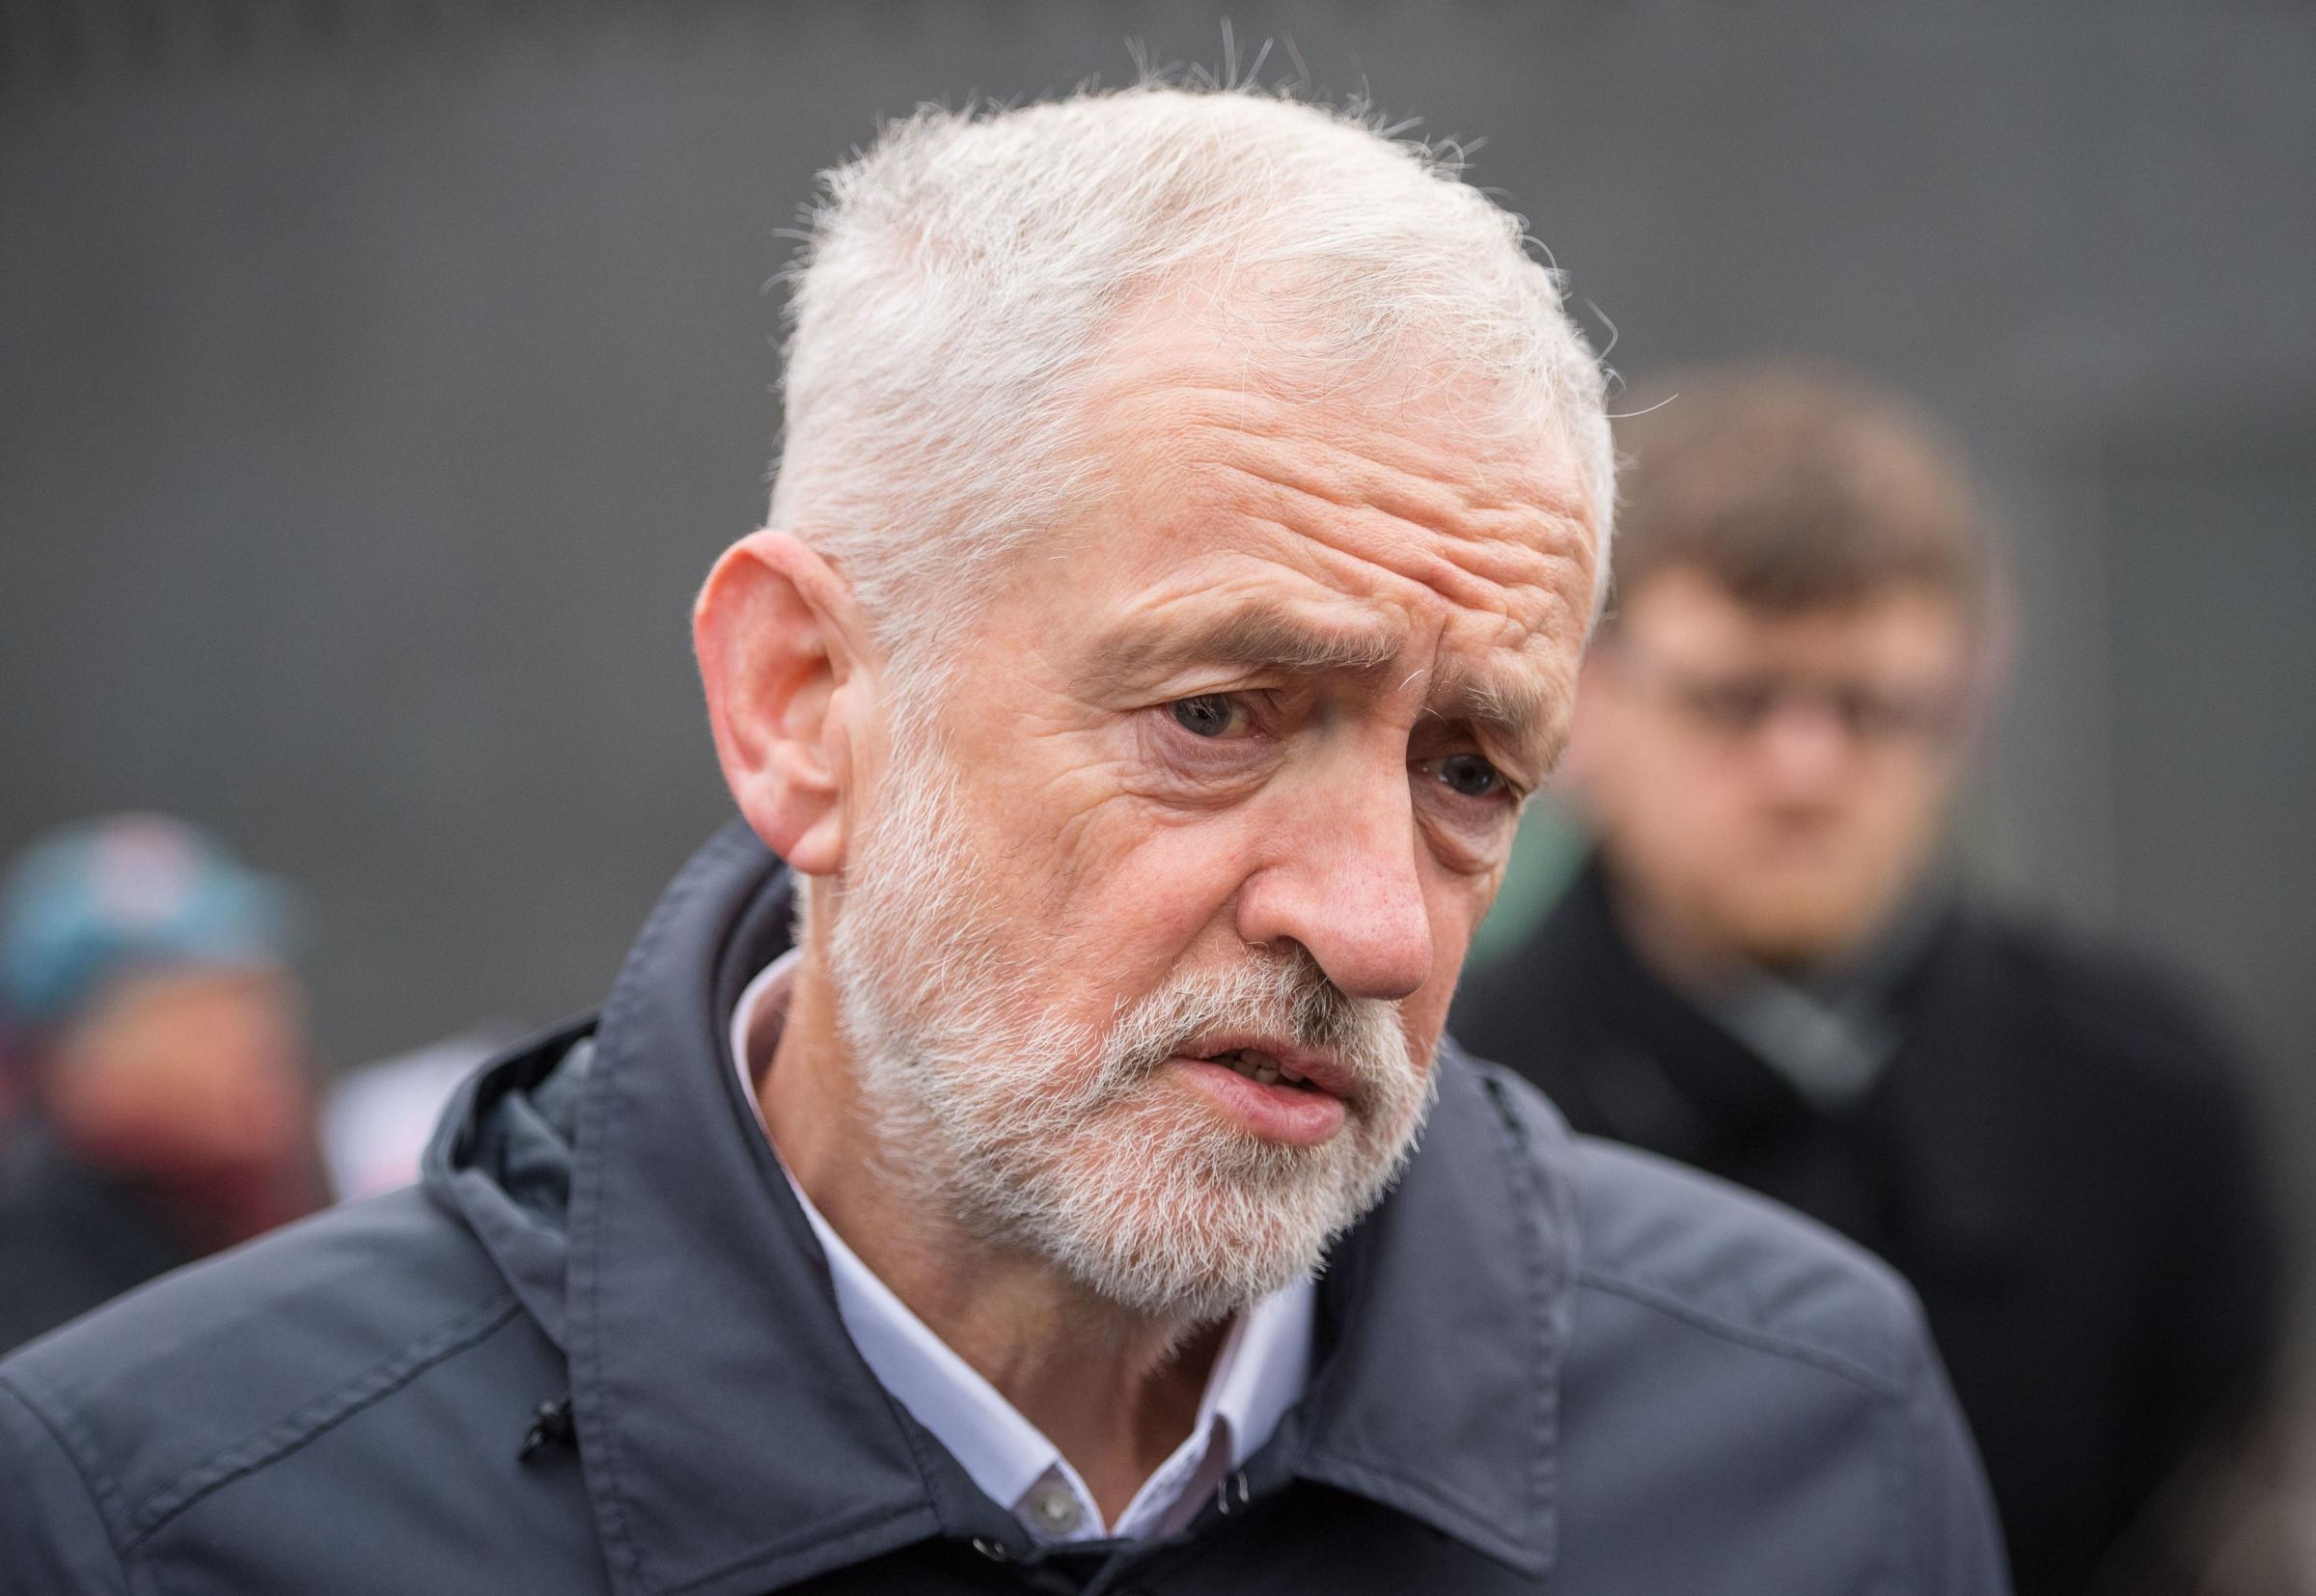 More than 70% of of Labour members want Jeremy Corbyn to call for a second referendum